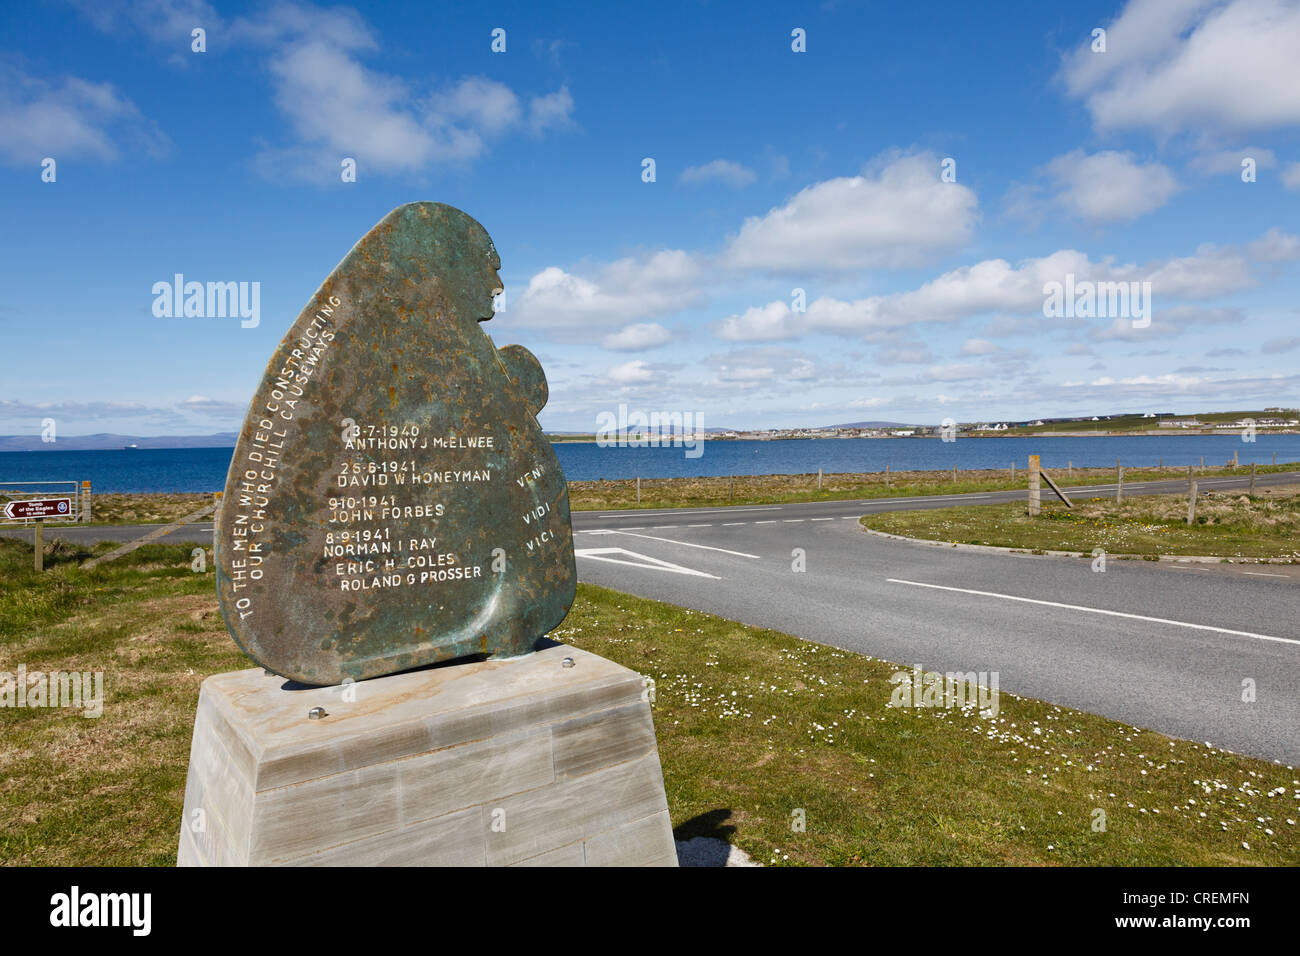 Memorial sculpture to men who died constructing Churchill barriers to connect small islands on Lamb Holm Island - Stock Image